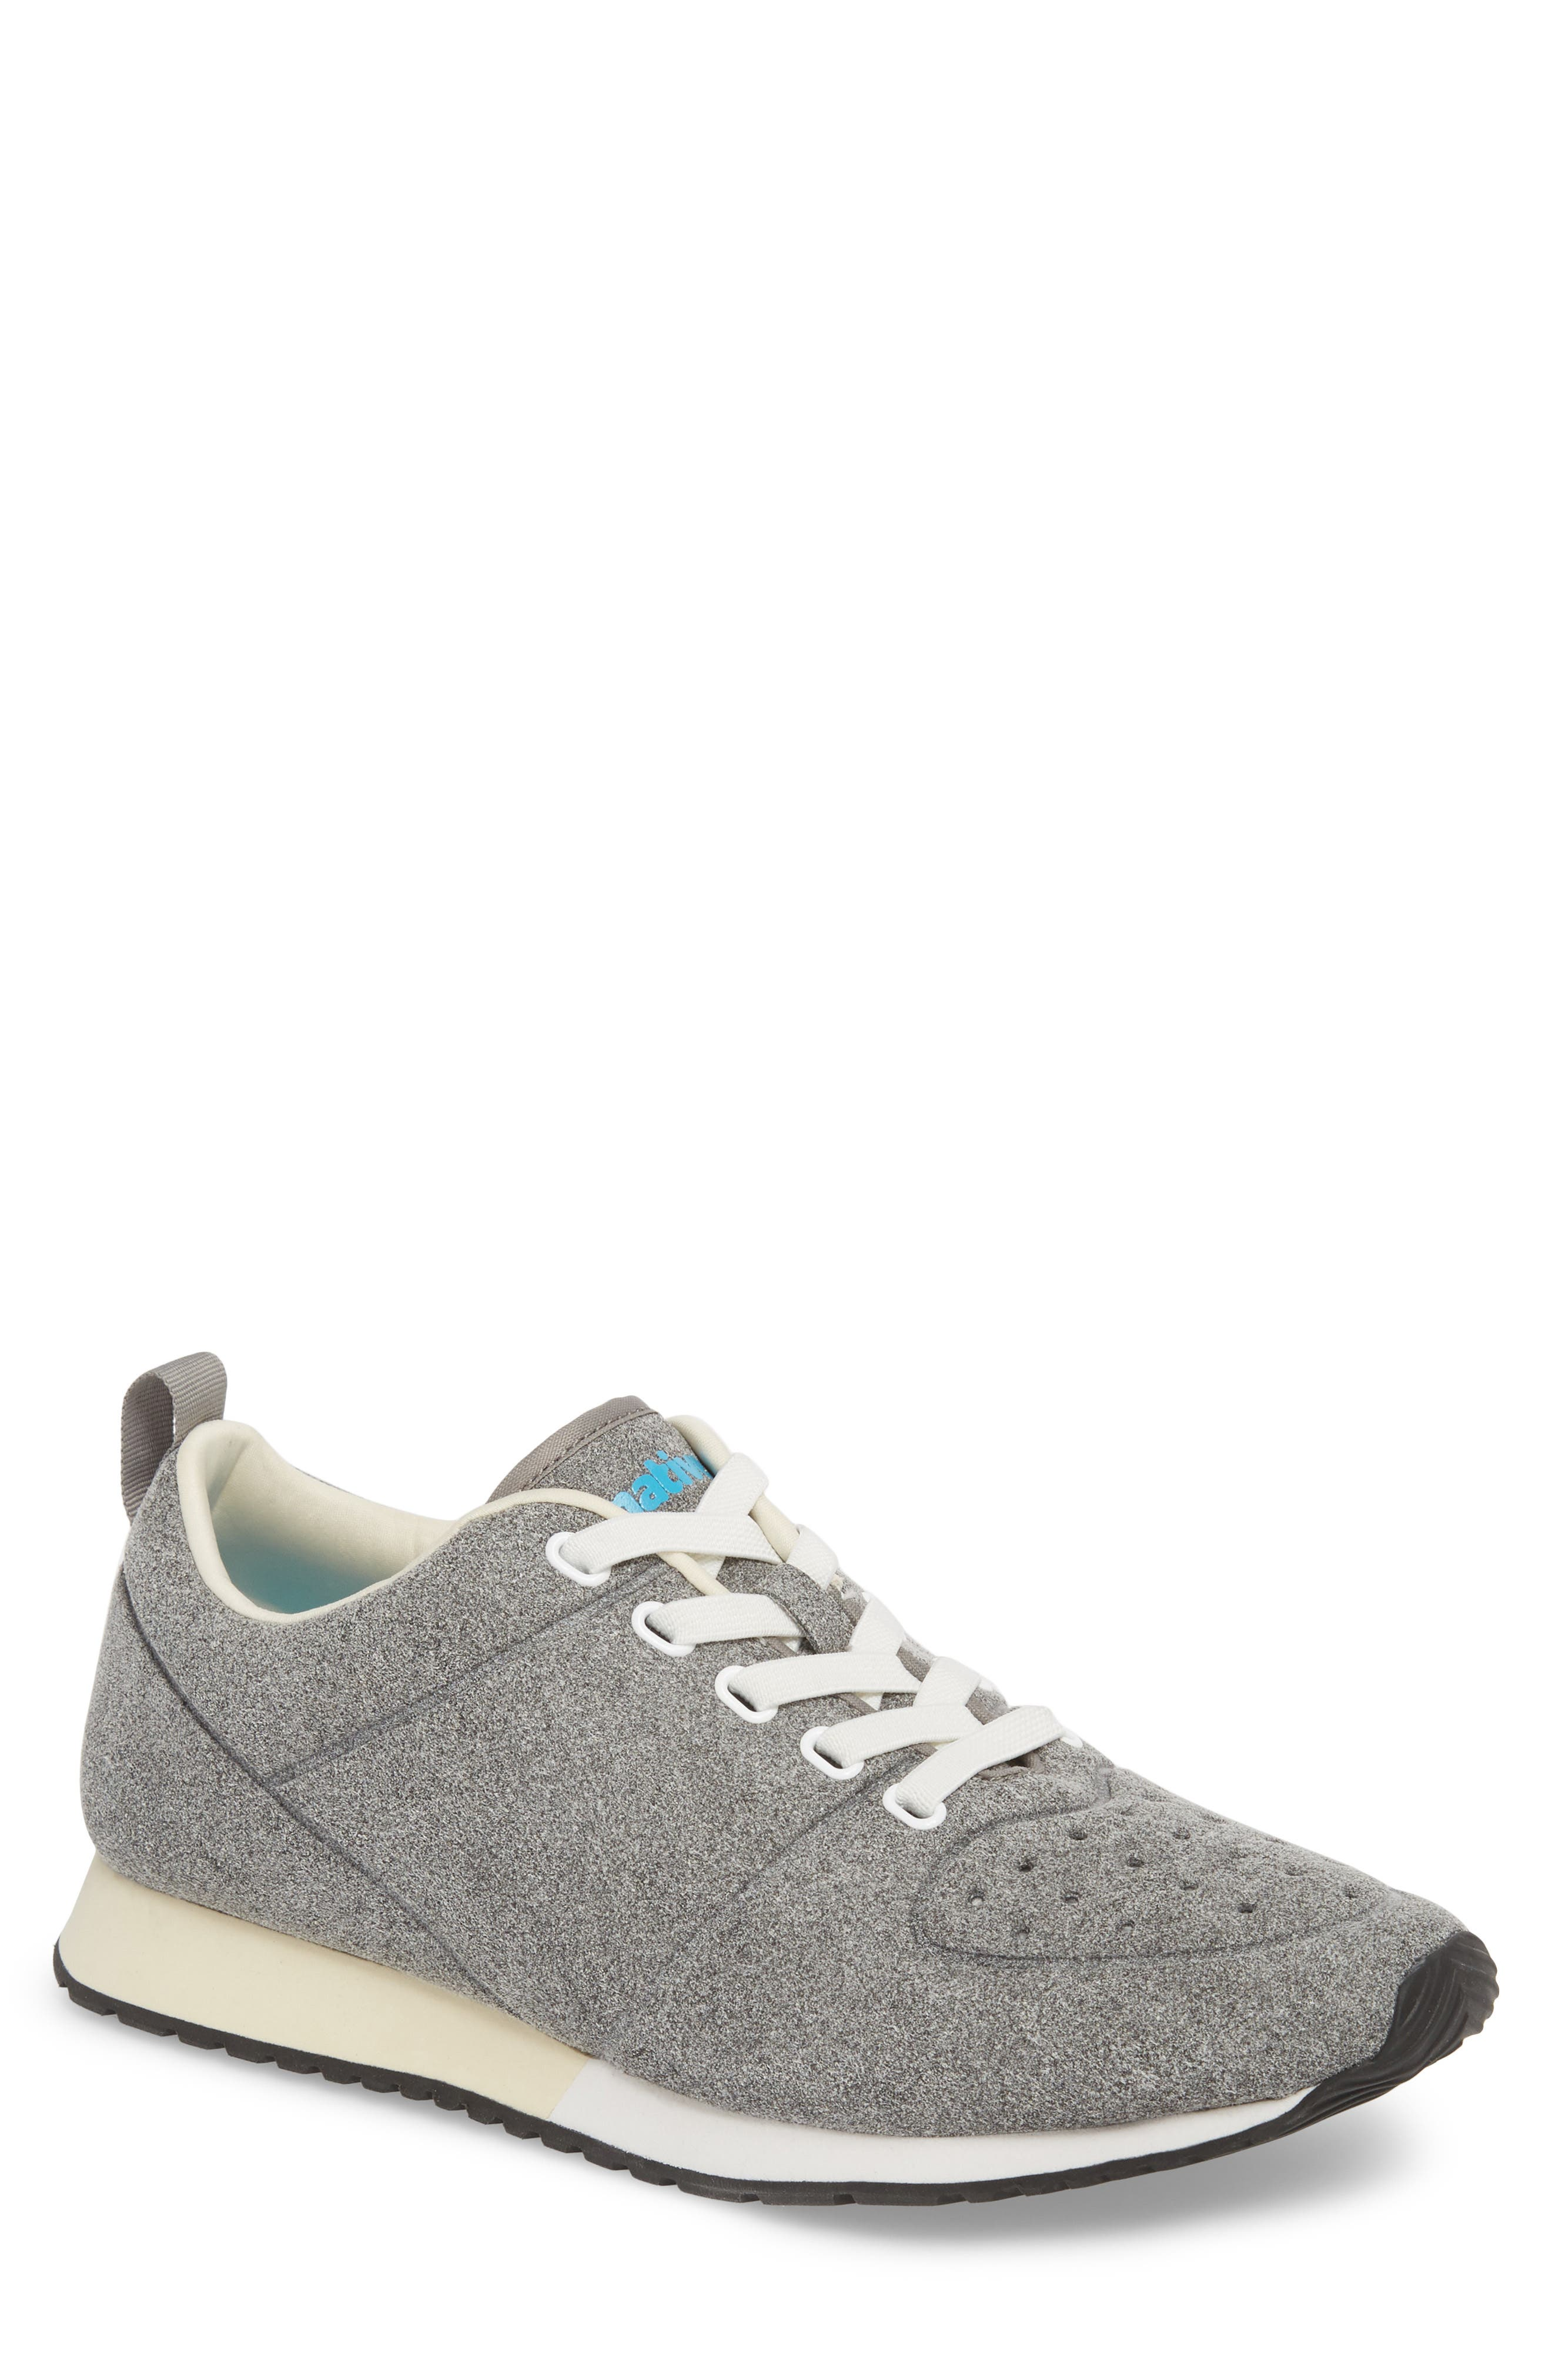 Cornell Perforated Sneaker,                         Main,                         color, PIGEON GREY/ SHELL WHITE